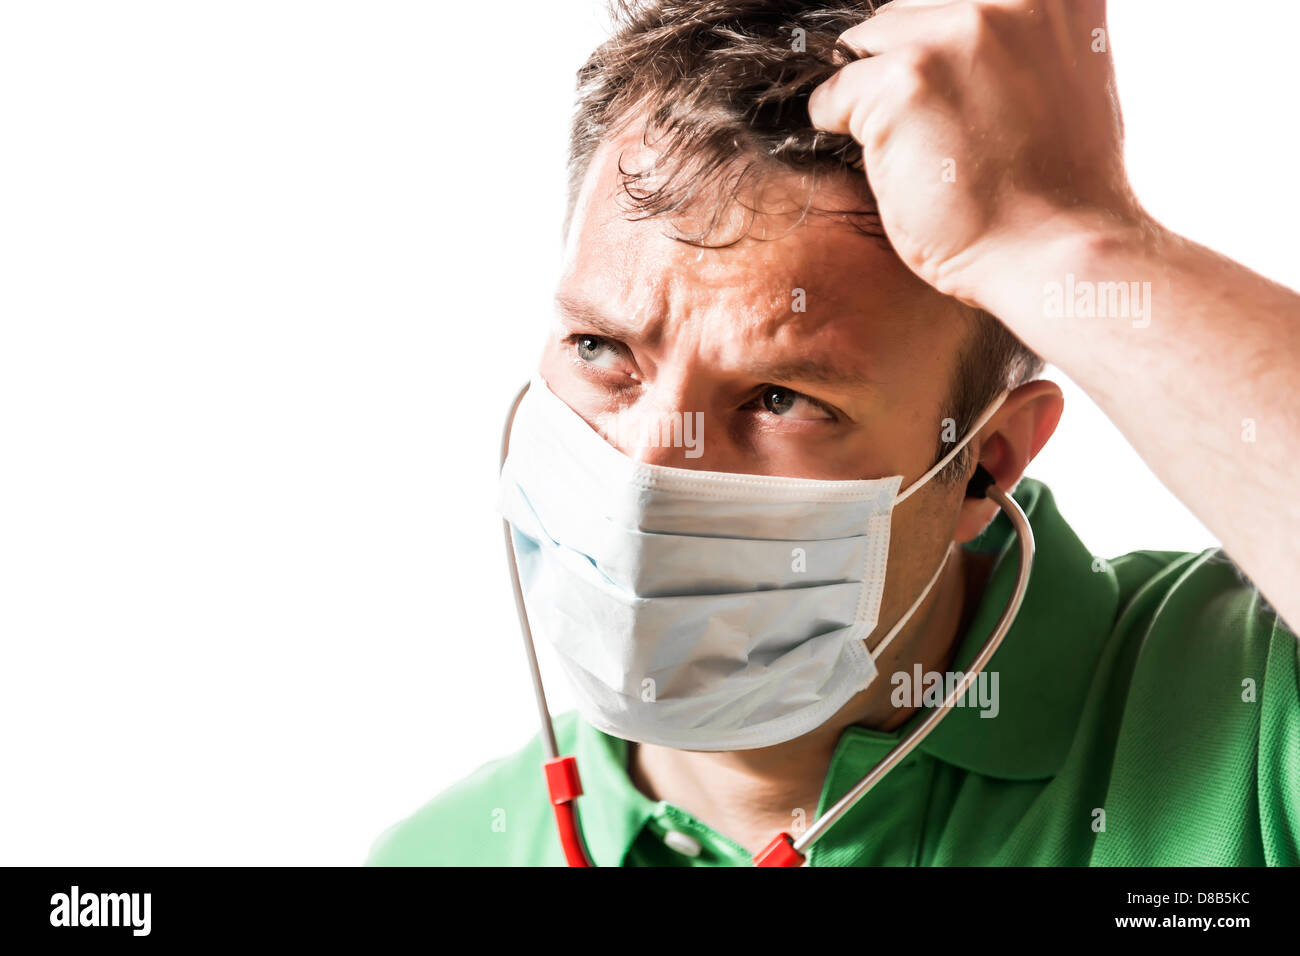 Helpless, anxious and perspiring doctor in a green shirt with a red stethoscope and surgical mask - Stock Image